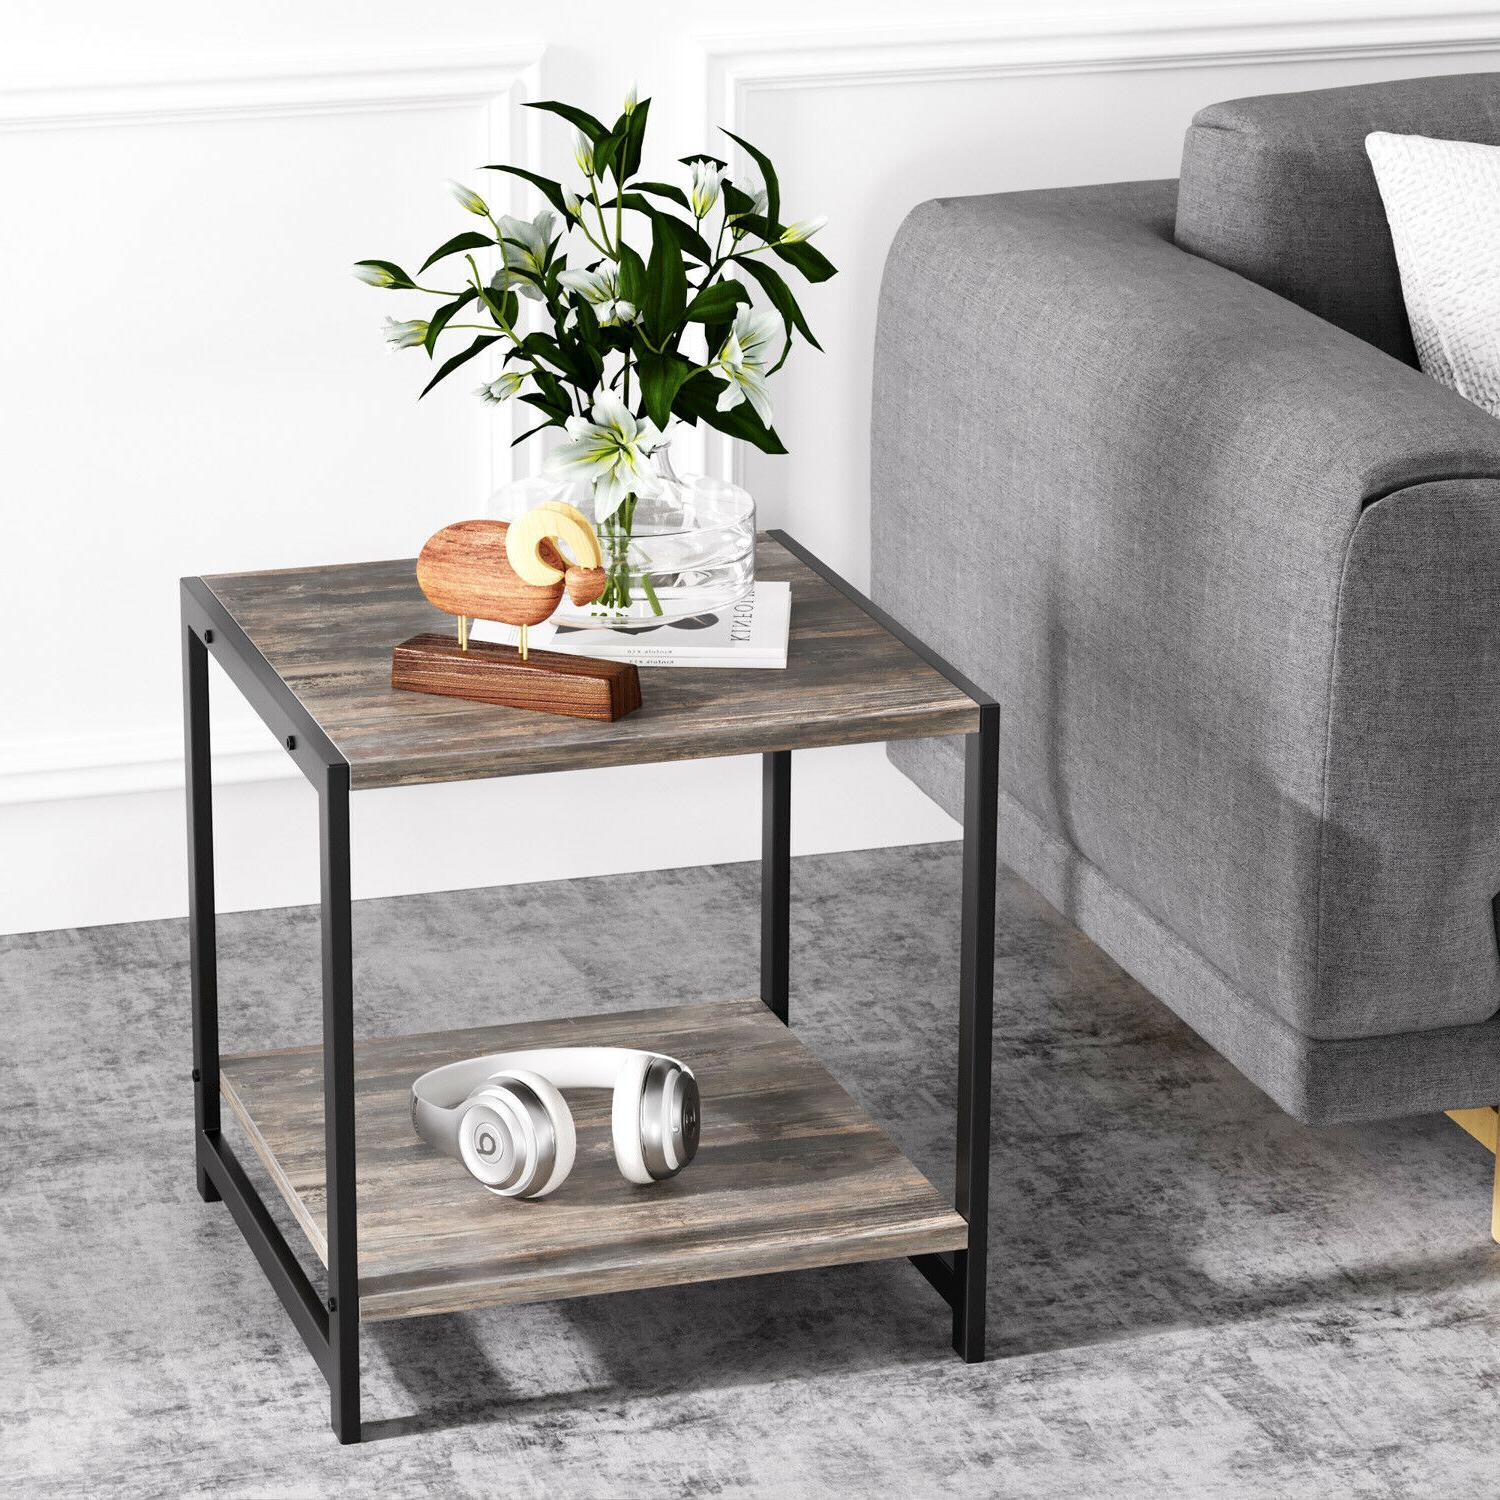 IRONCK End Table, Stand Table Storage